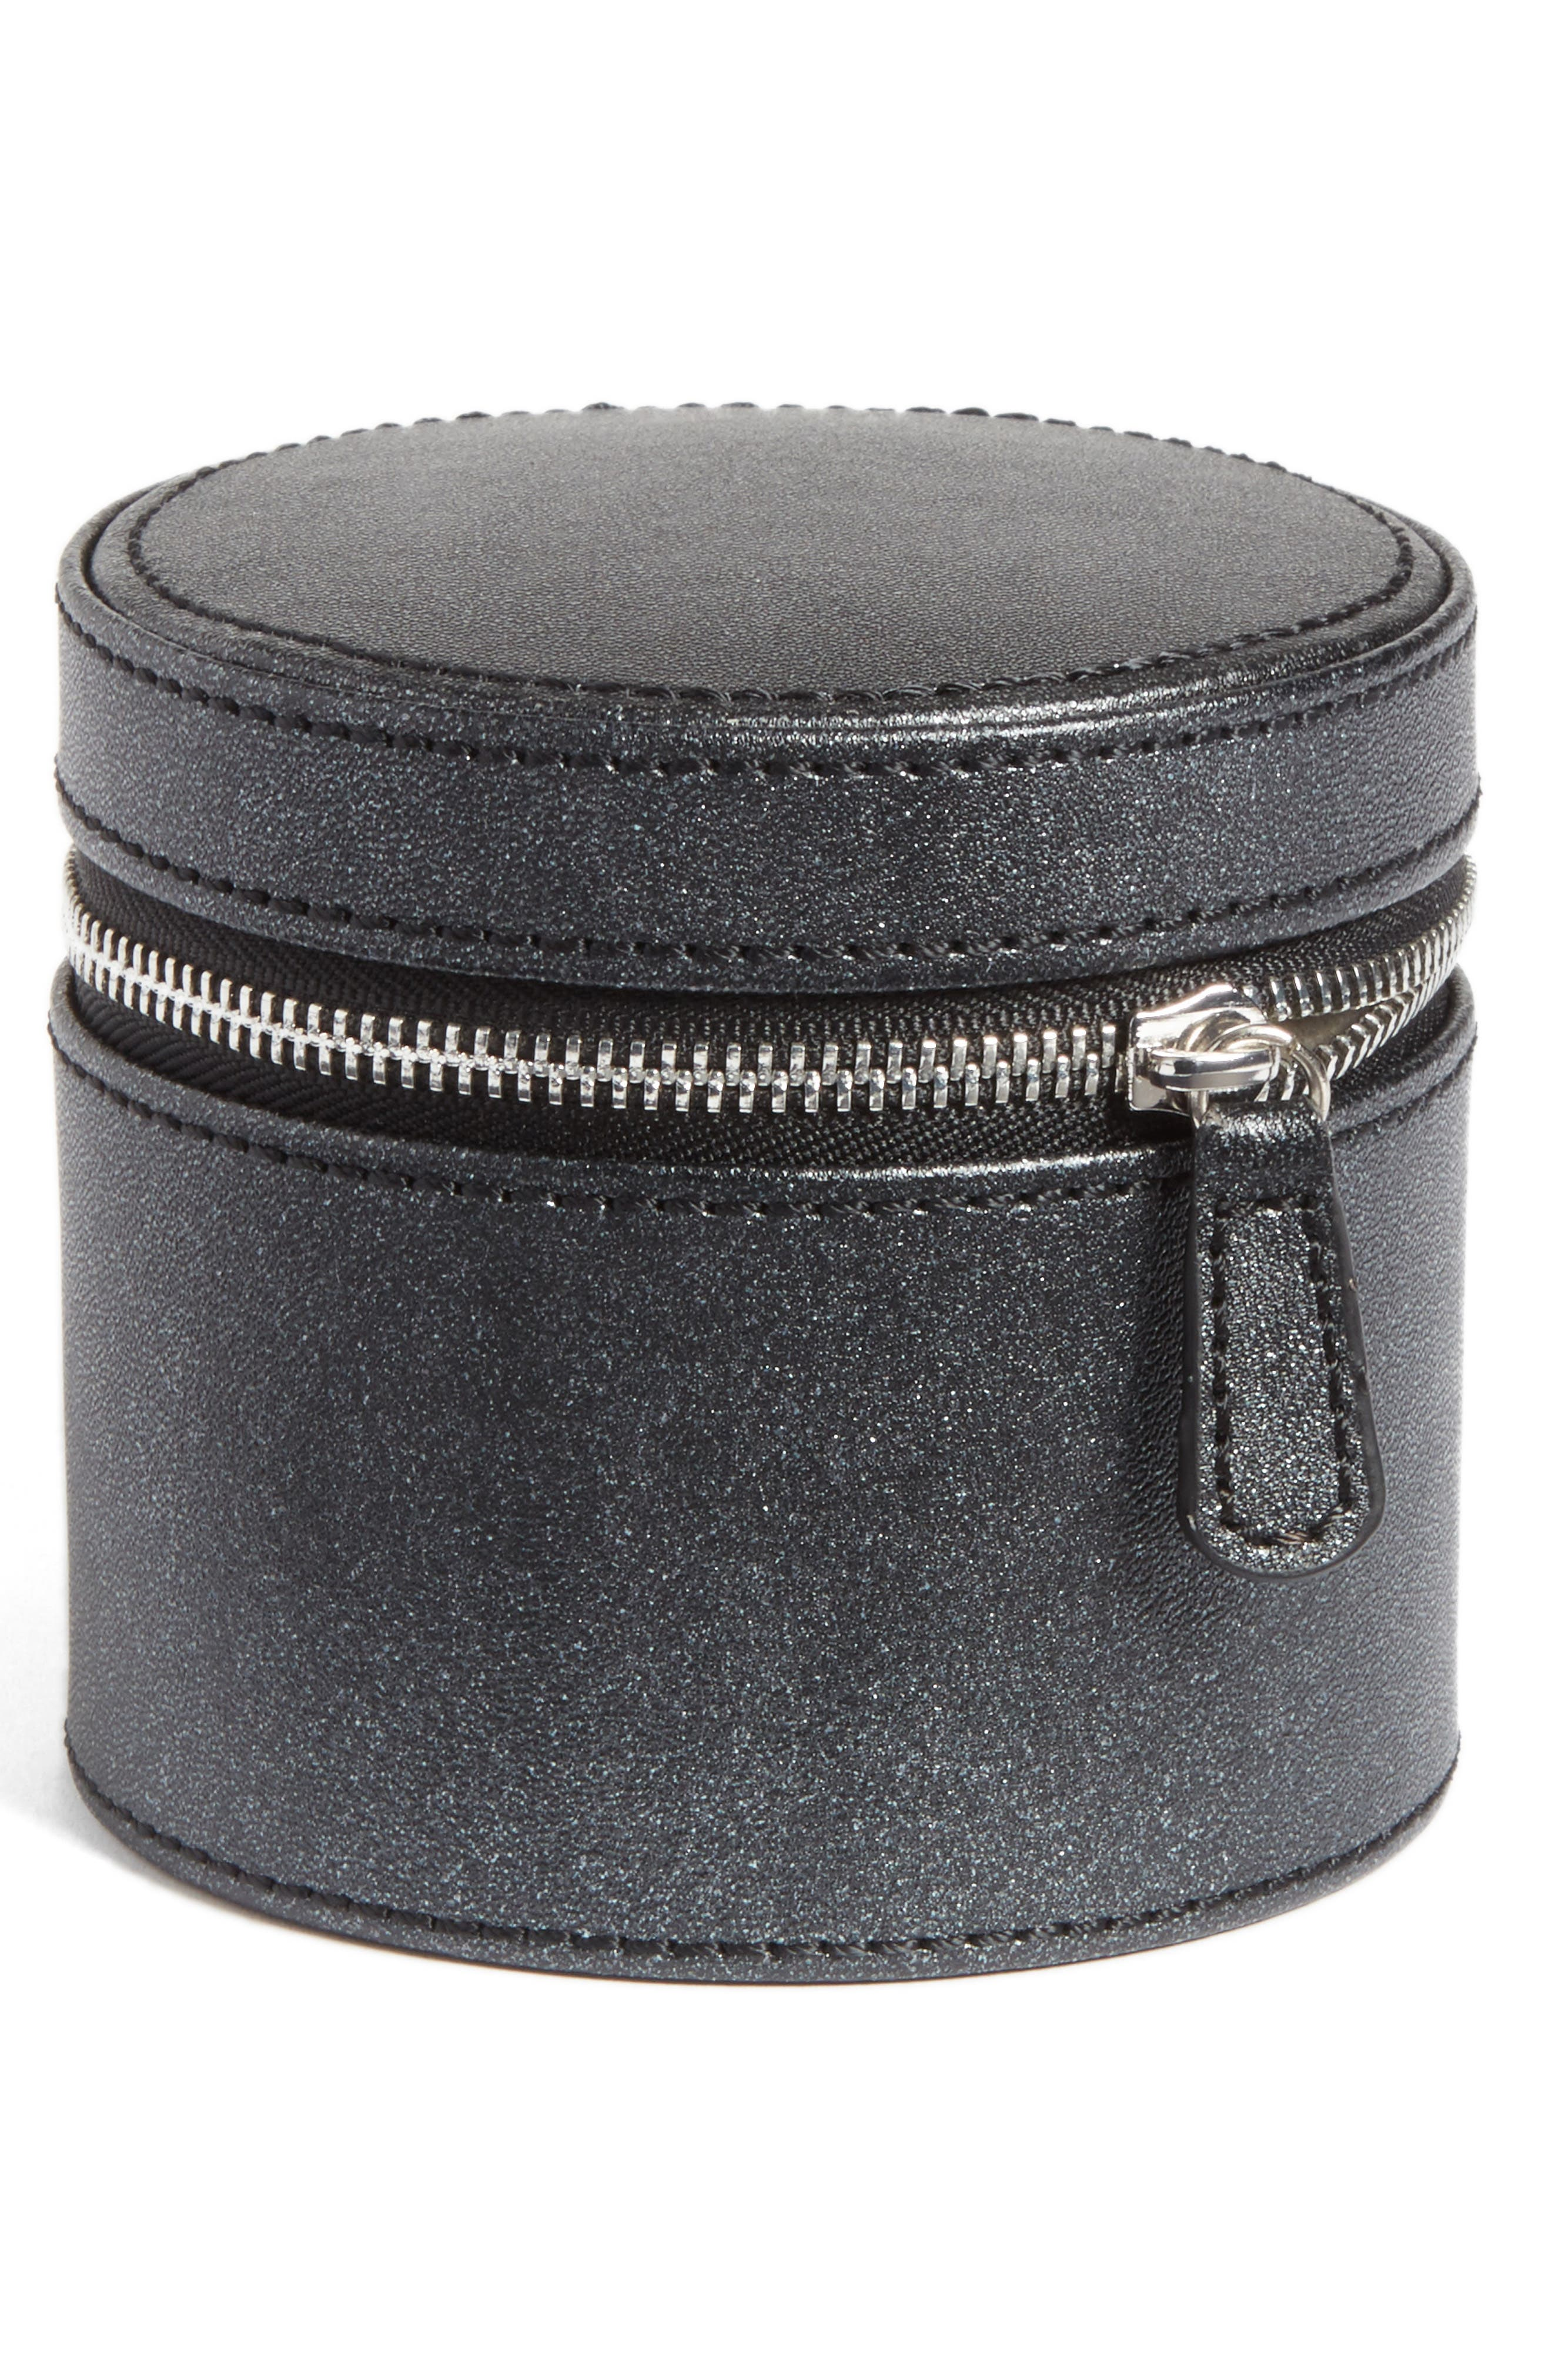 Small Round Zippered Jewelry Case,                         Main,                         color,